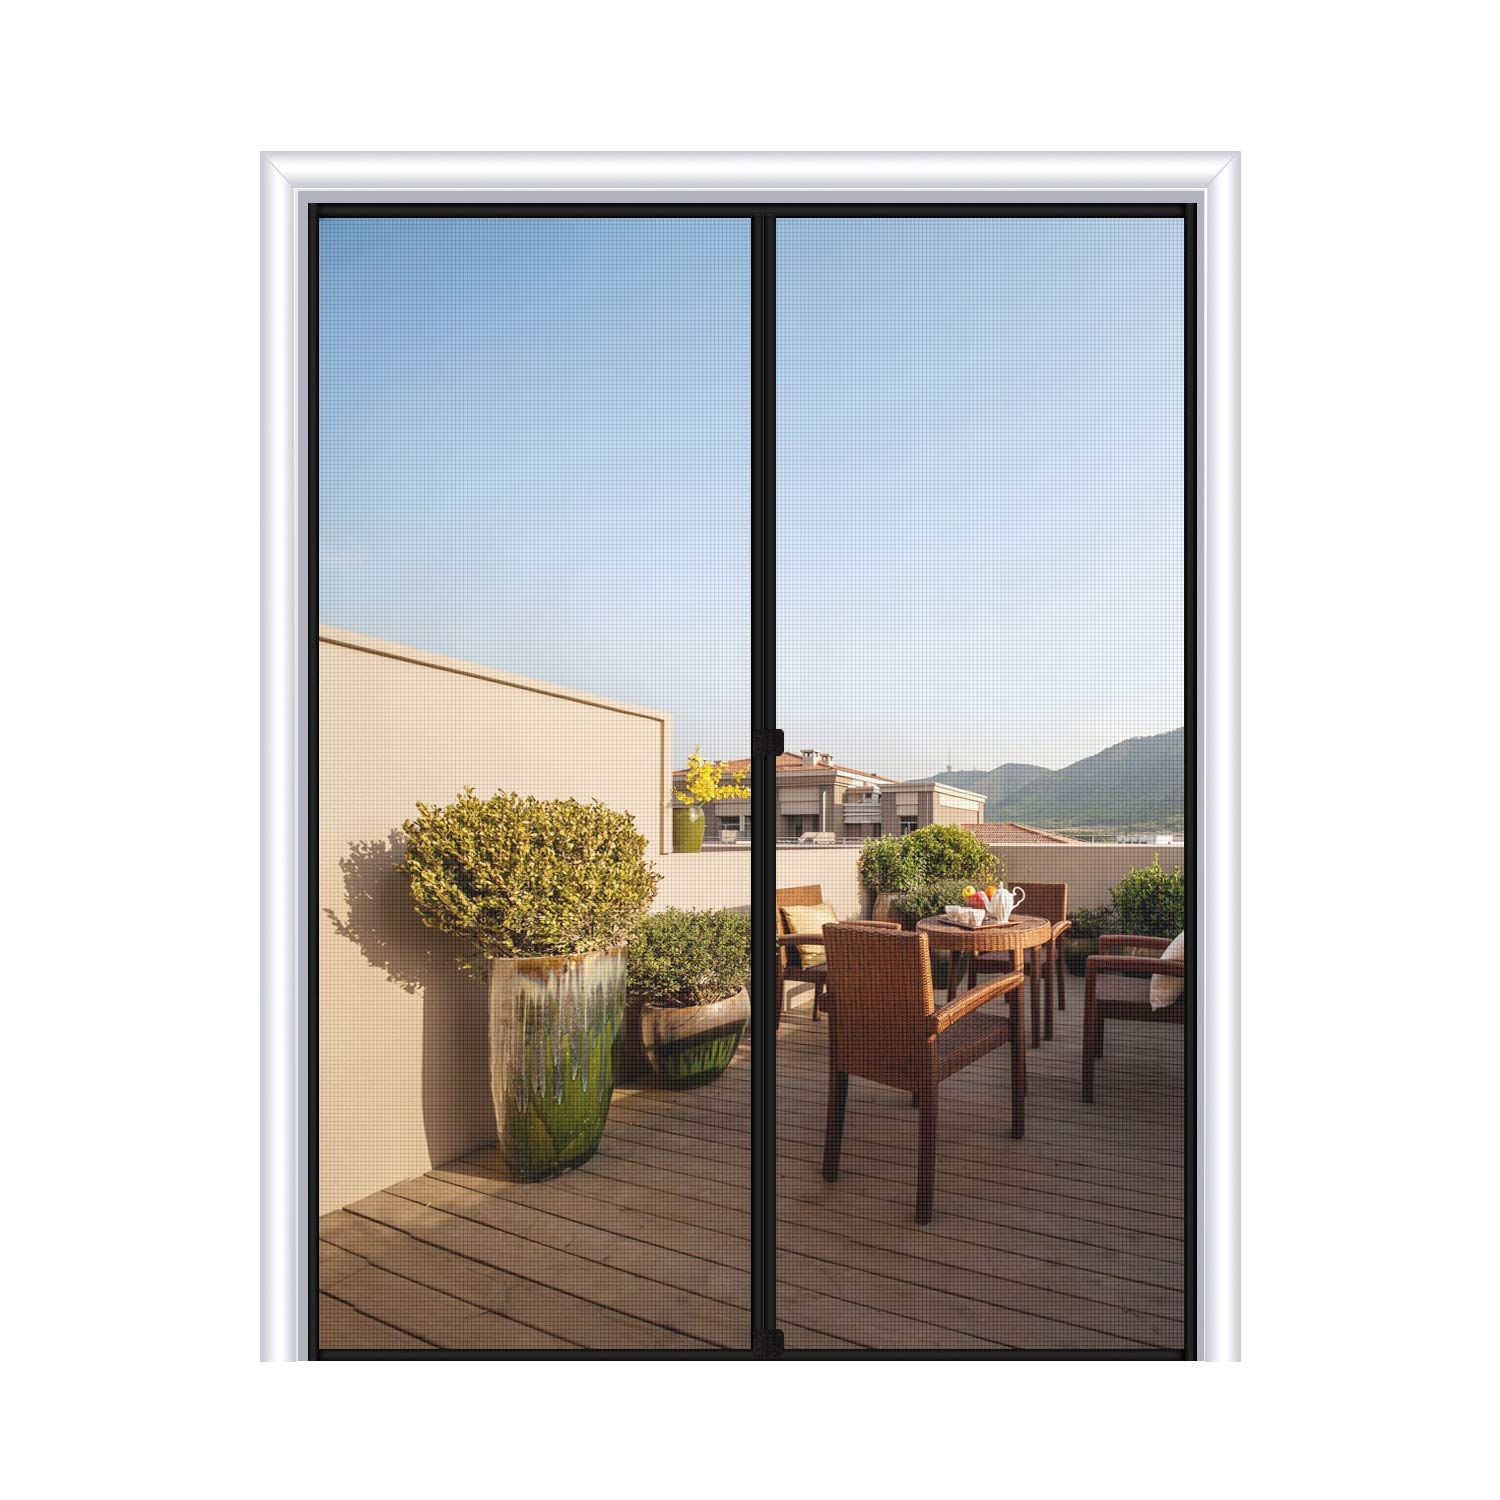 MAGZO Magnetic Screen Door 72 x 80, Fiberglass French Door Mesh Curtain with Heavy Duty Fits Door Size up to 72''x80'' Max-Grey by MAGZO